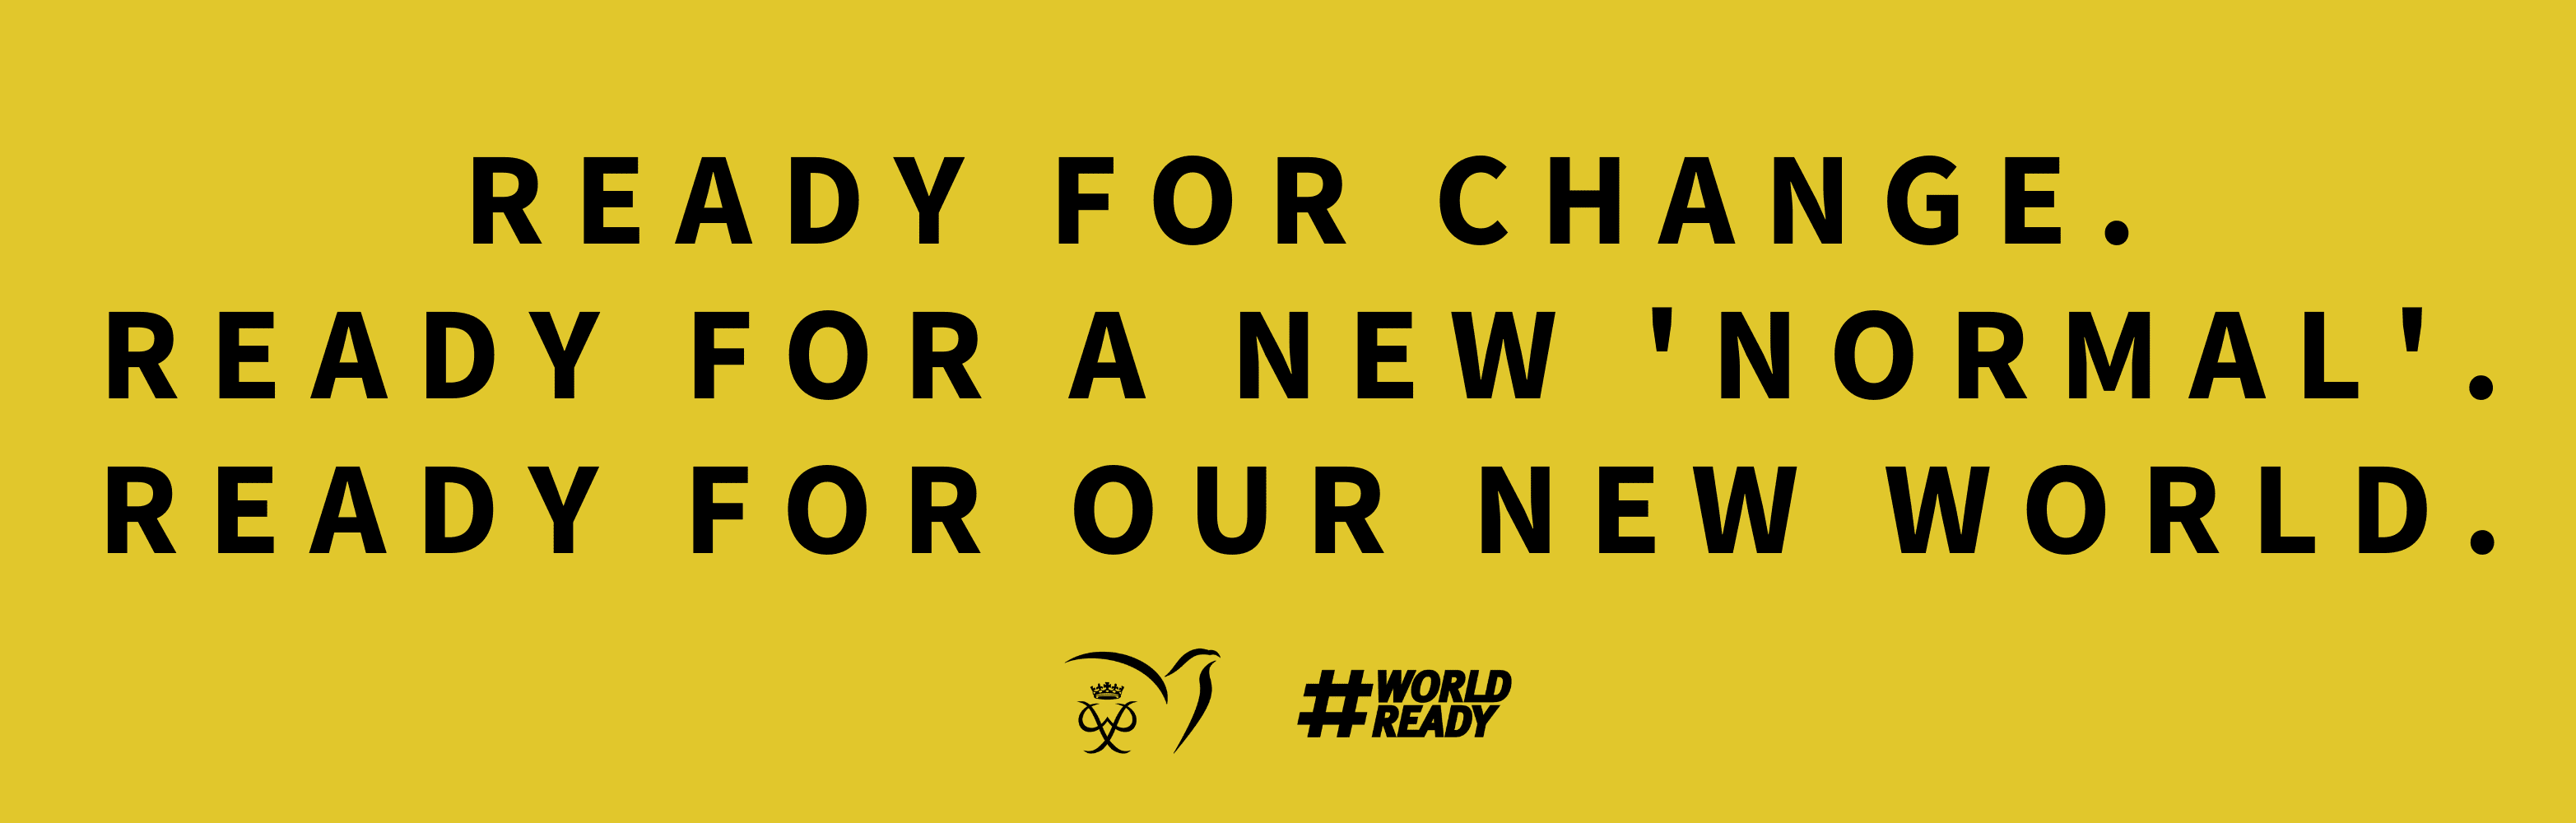 READY FOR OUR NEW WORLD